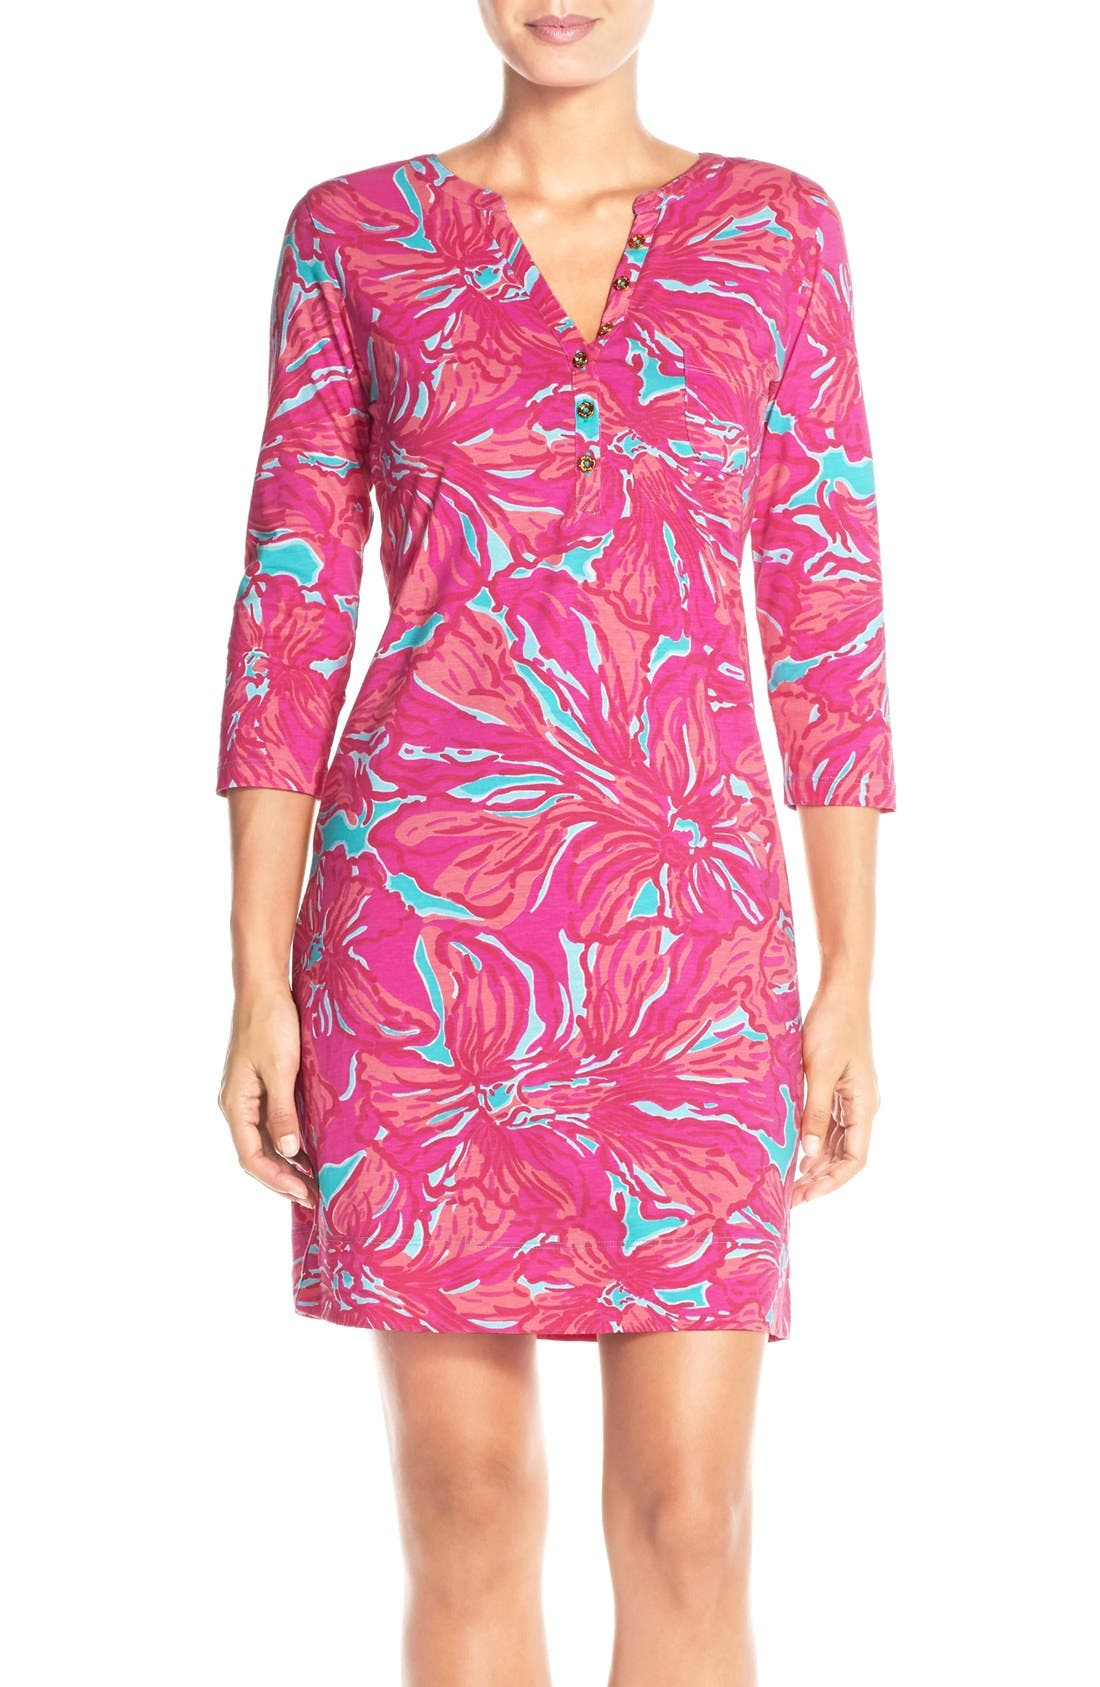 Main Image - Lilly Pulitzer® 'Alessia' Print Pima Cotton T-Shirt Dress (Nordstrom Exclusive)